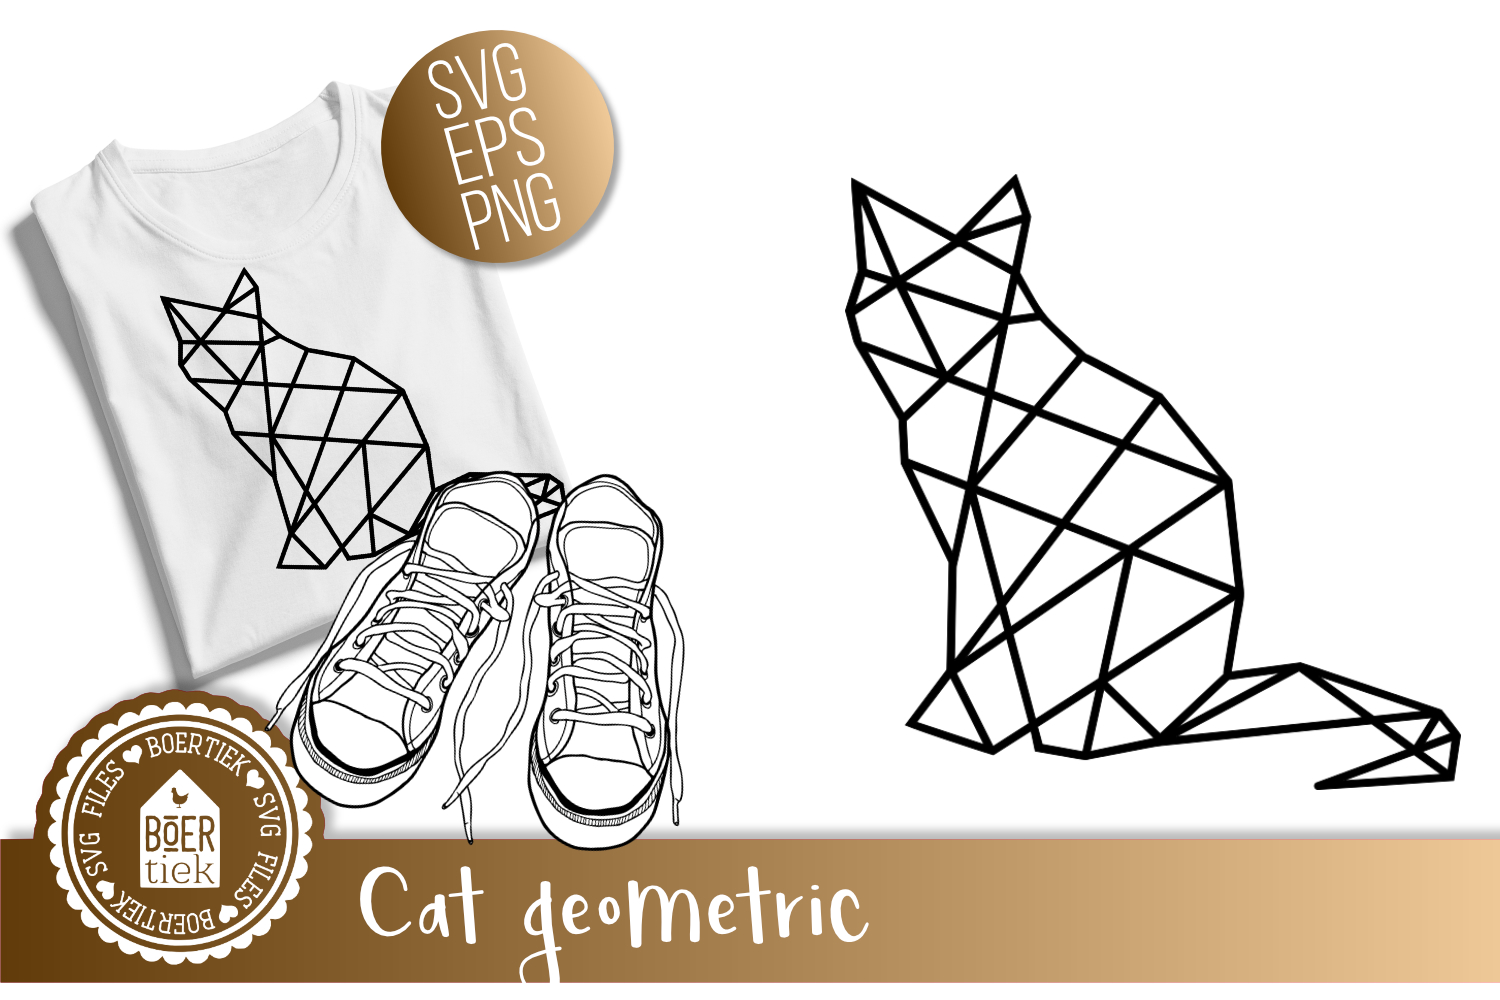 Download Free Cat Geometric Graphic By Boertiek Creative Fabrica for Cricut Explore, Silhouette and other cutting machines.